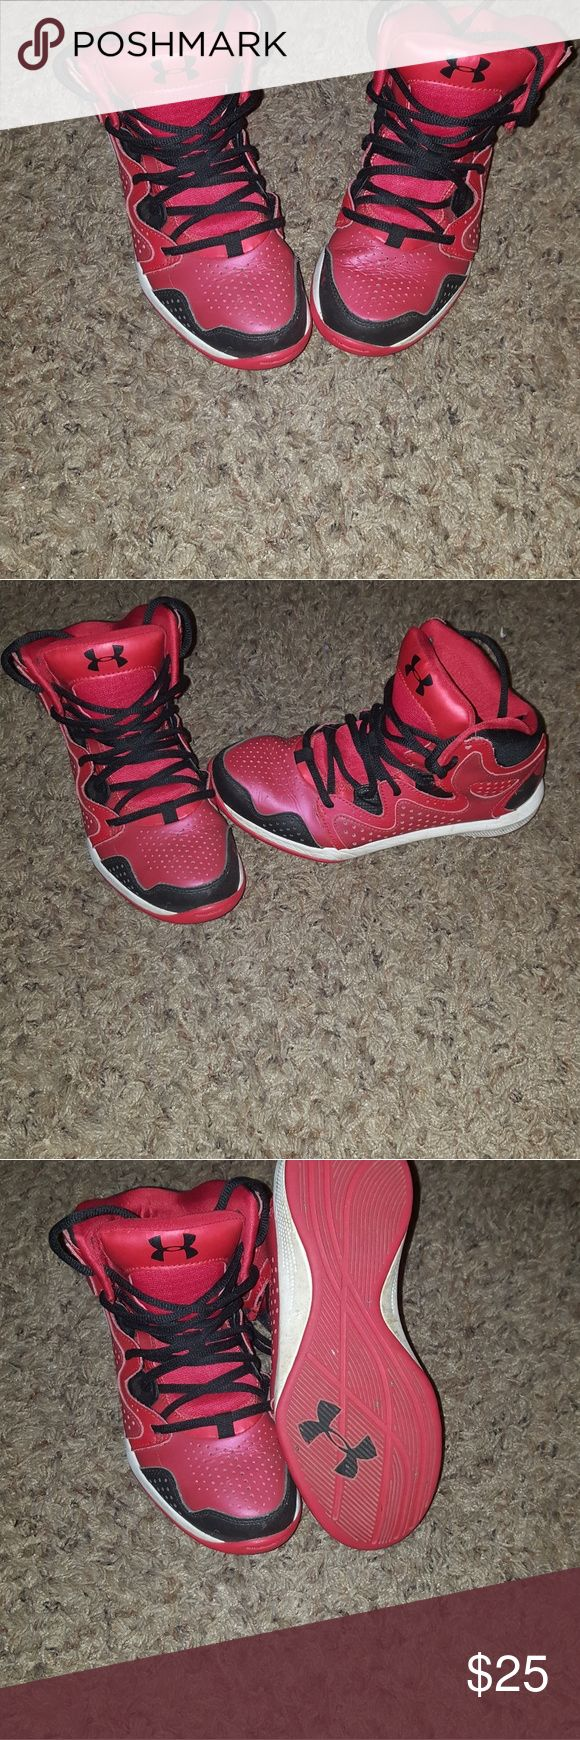 Under Armour Boys Basketball Shoes Size 4.5Y Red and Black, never worn off of a basketball court Under Armour Shoes Athletic Shoes